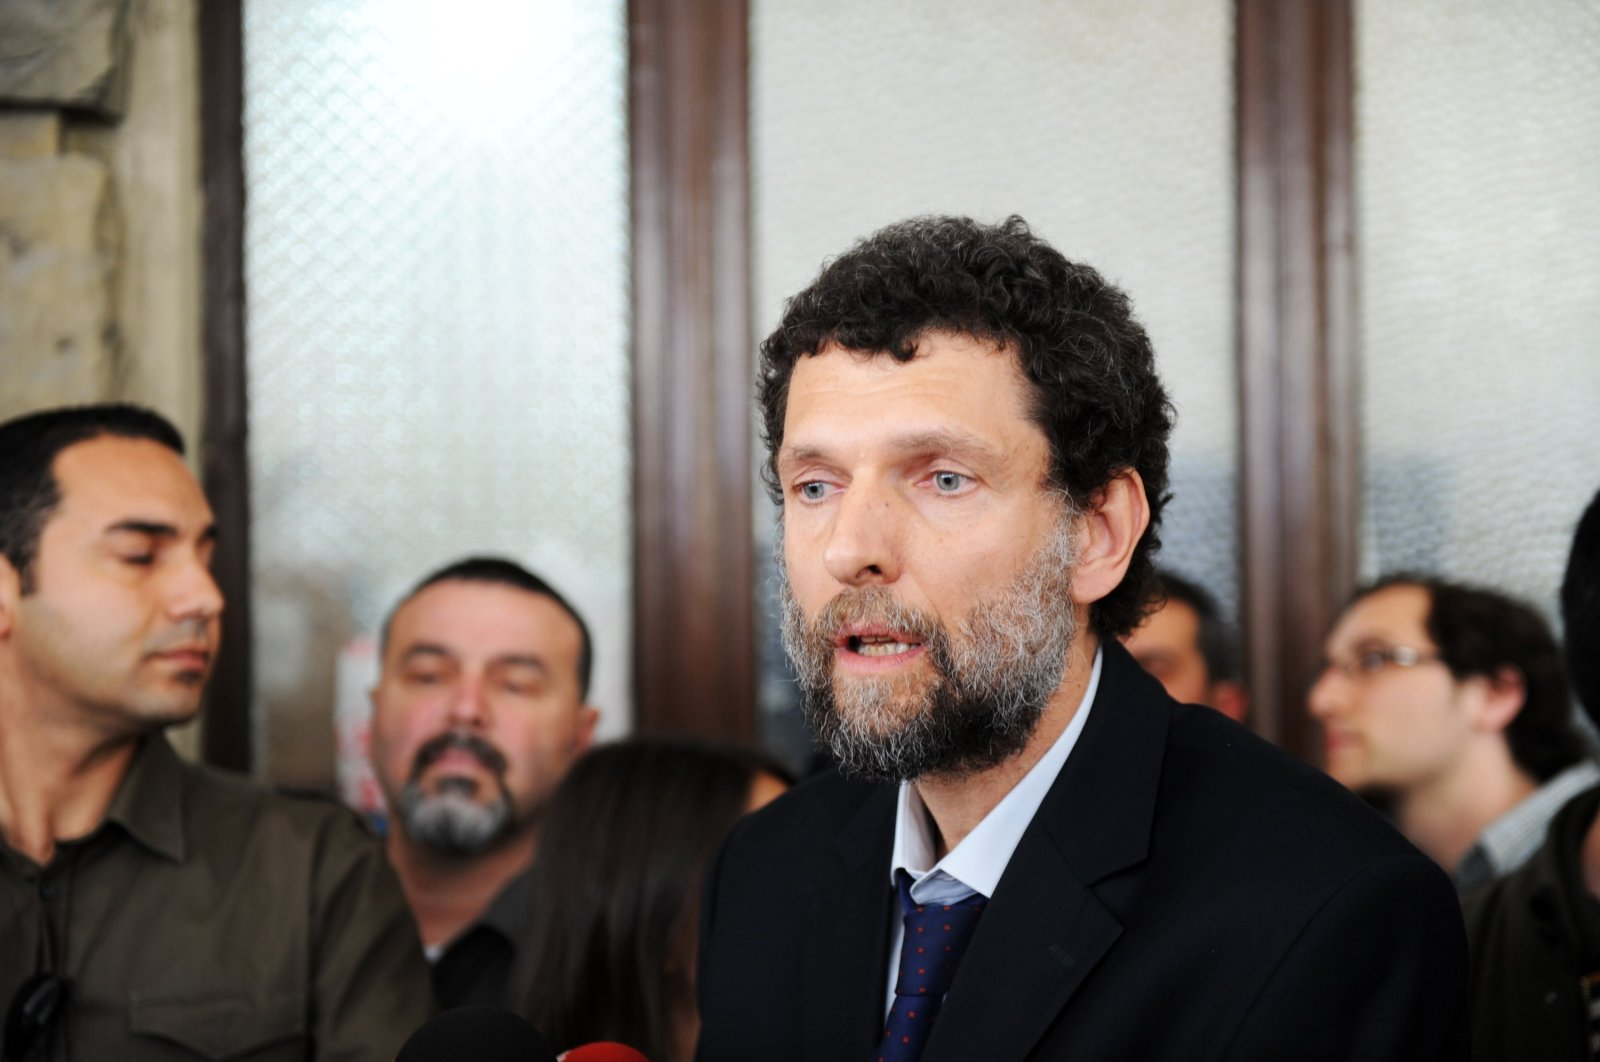 Osman Kavala attends an event in Istanbul, Turkey, April 24, 2010. (iStock Photo)